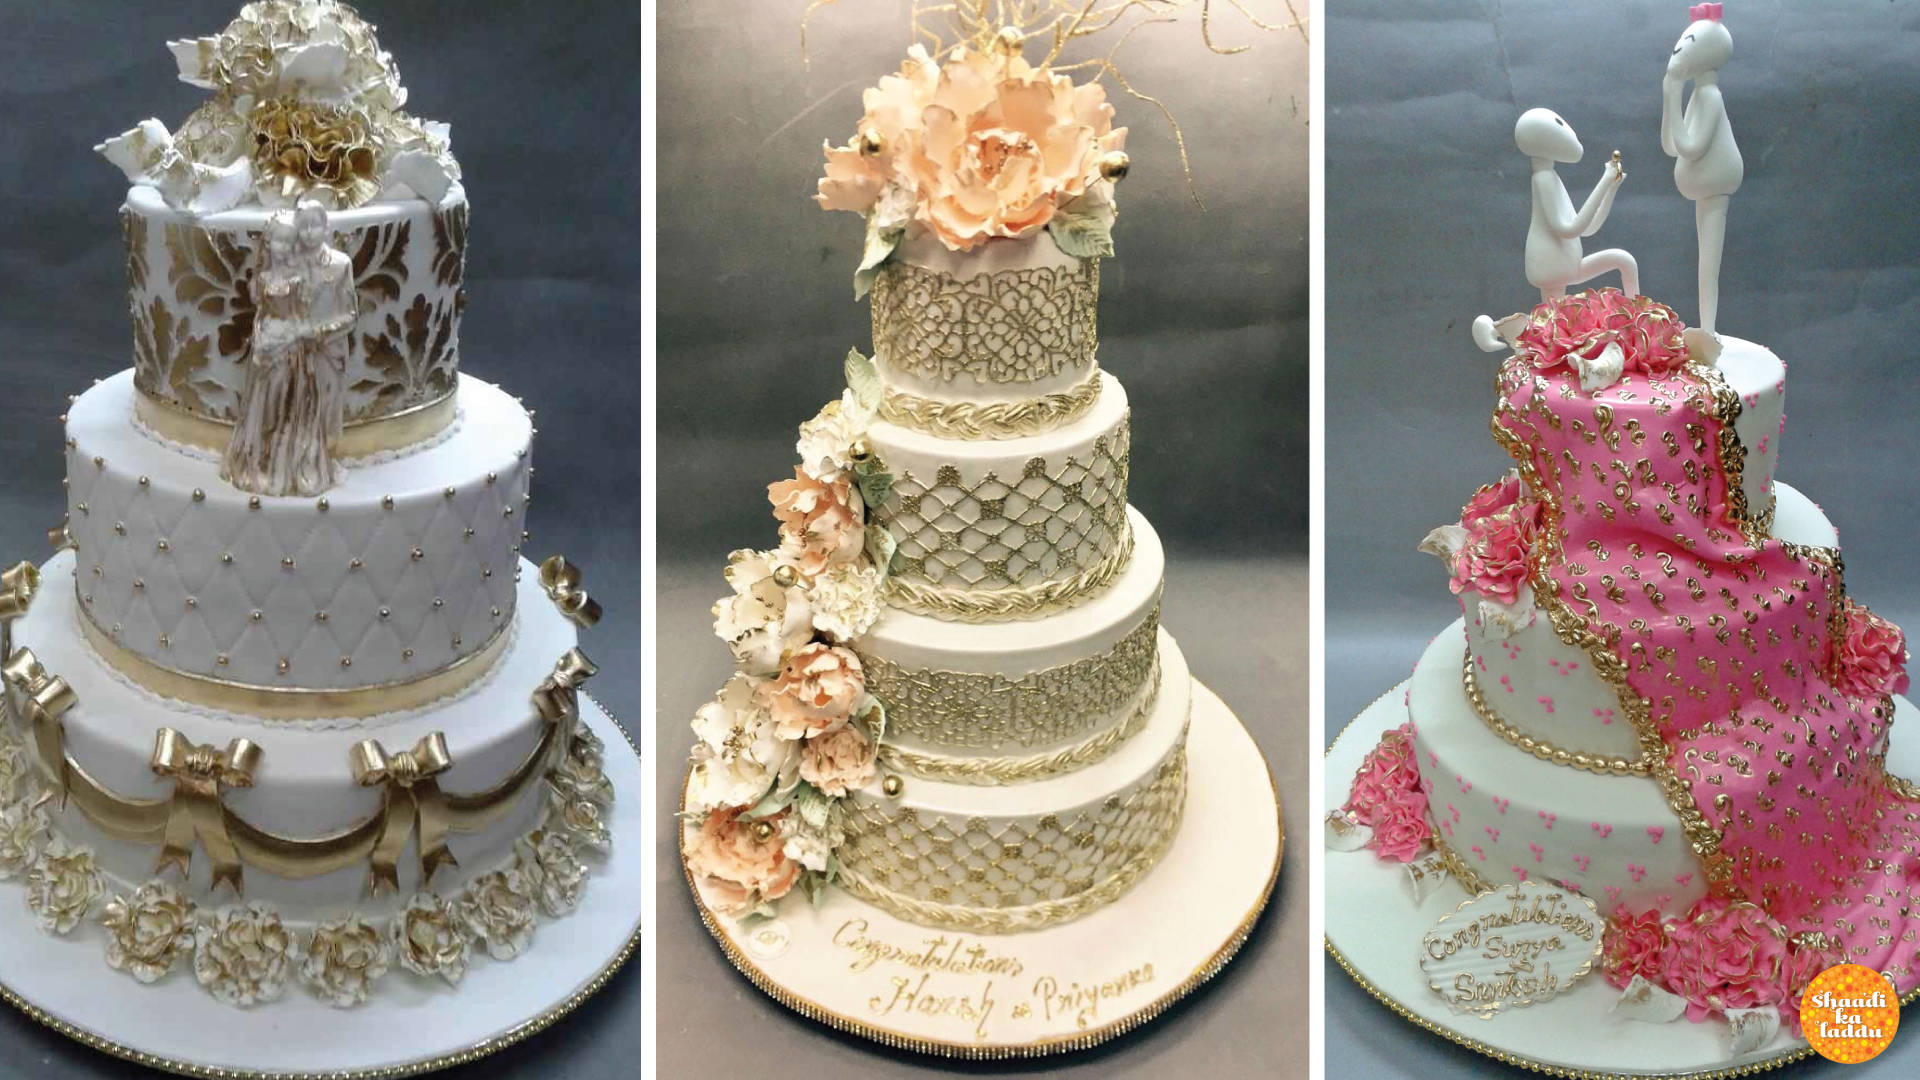 Wedding cakes from Deliciae Patisserie, Mumbai